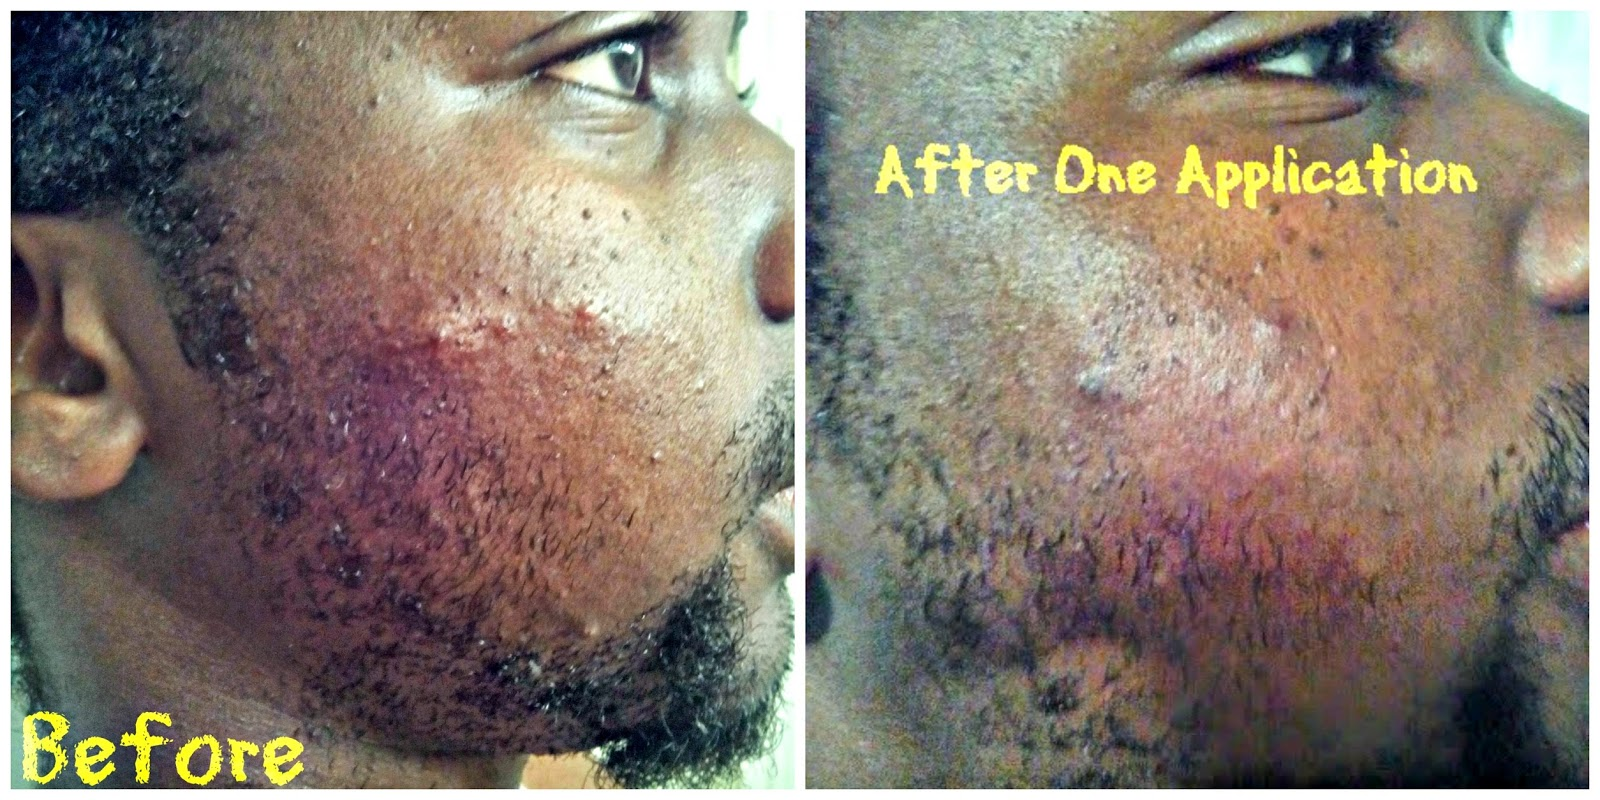 Apothederm, Skin Care, Science, Acne, Clarifying, Treatment, Acne treatment, acne treatment results, acne before and after,